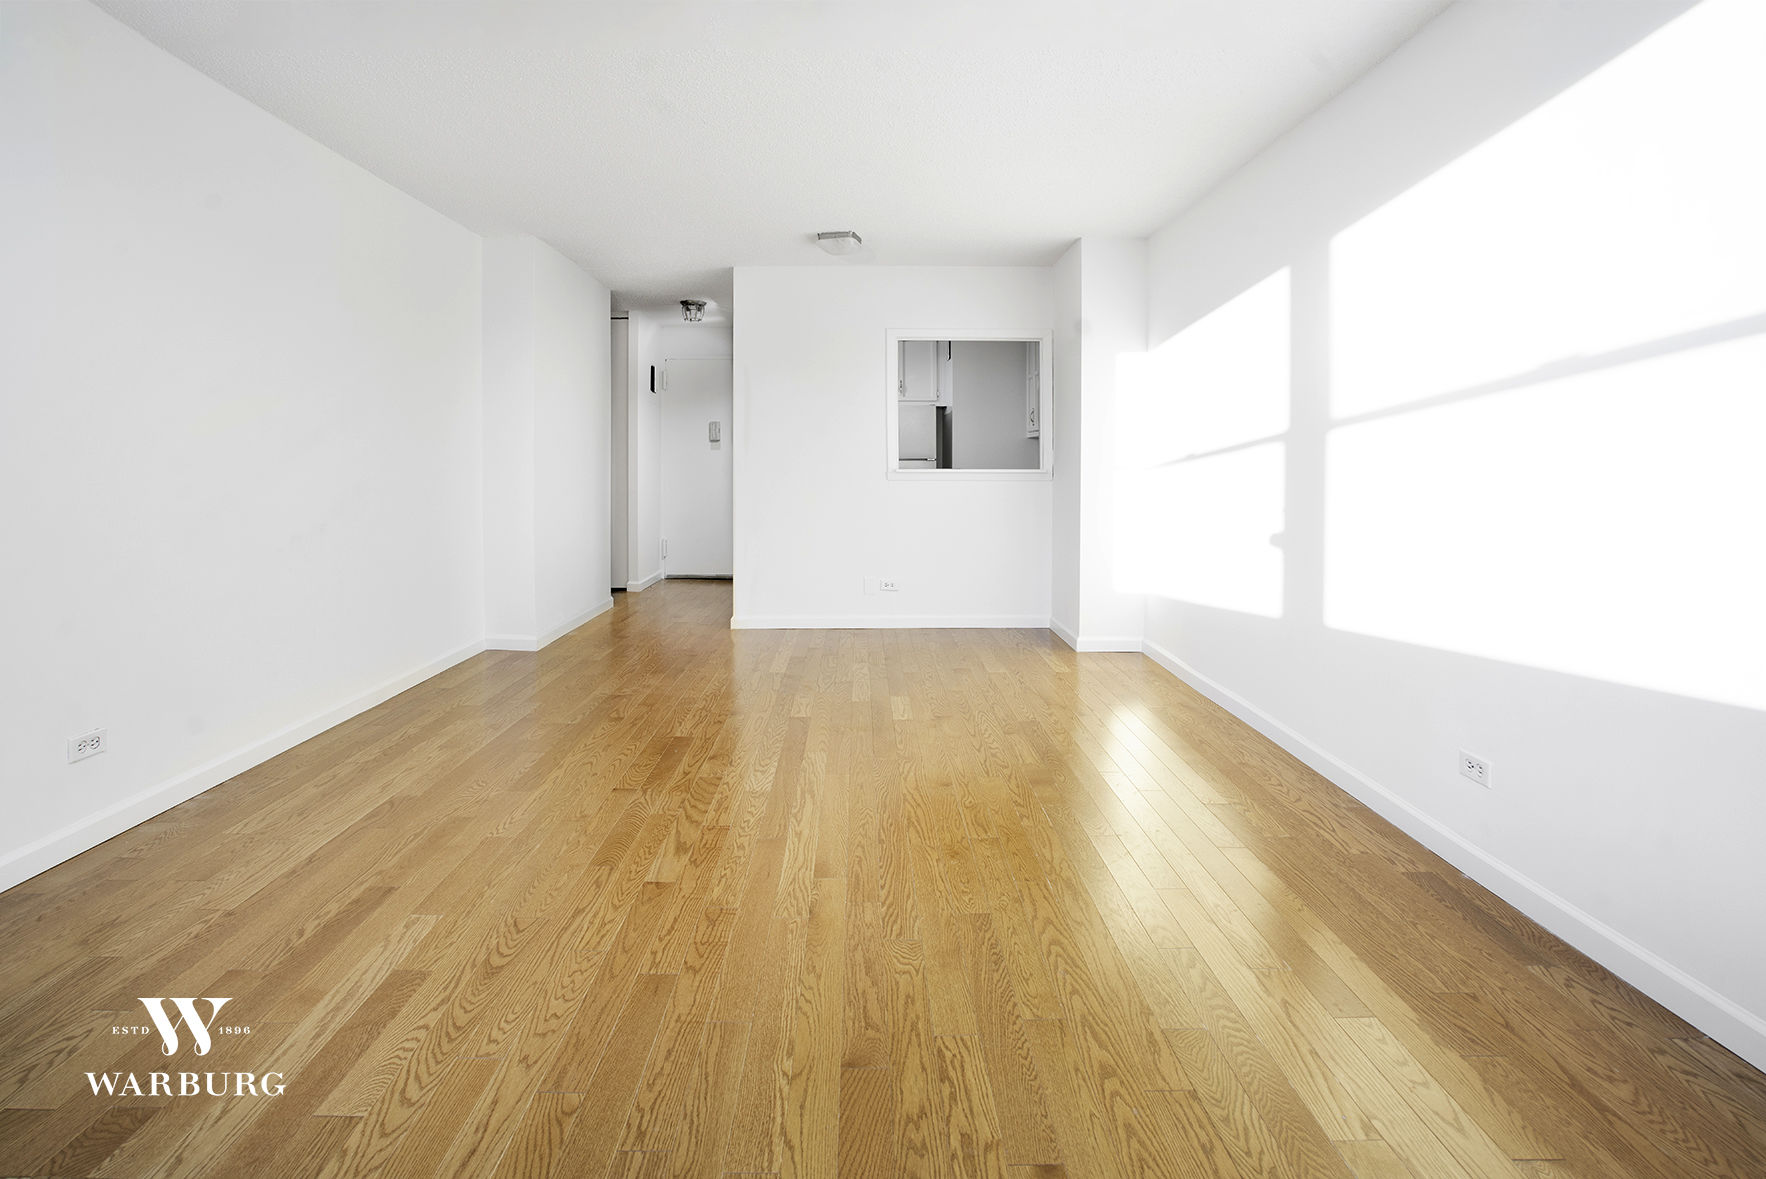 301 East 79th Street, Apt 29 K Photo 2 - WR-3009366